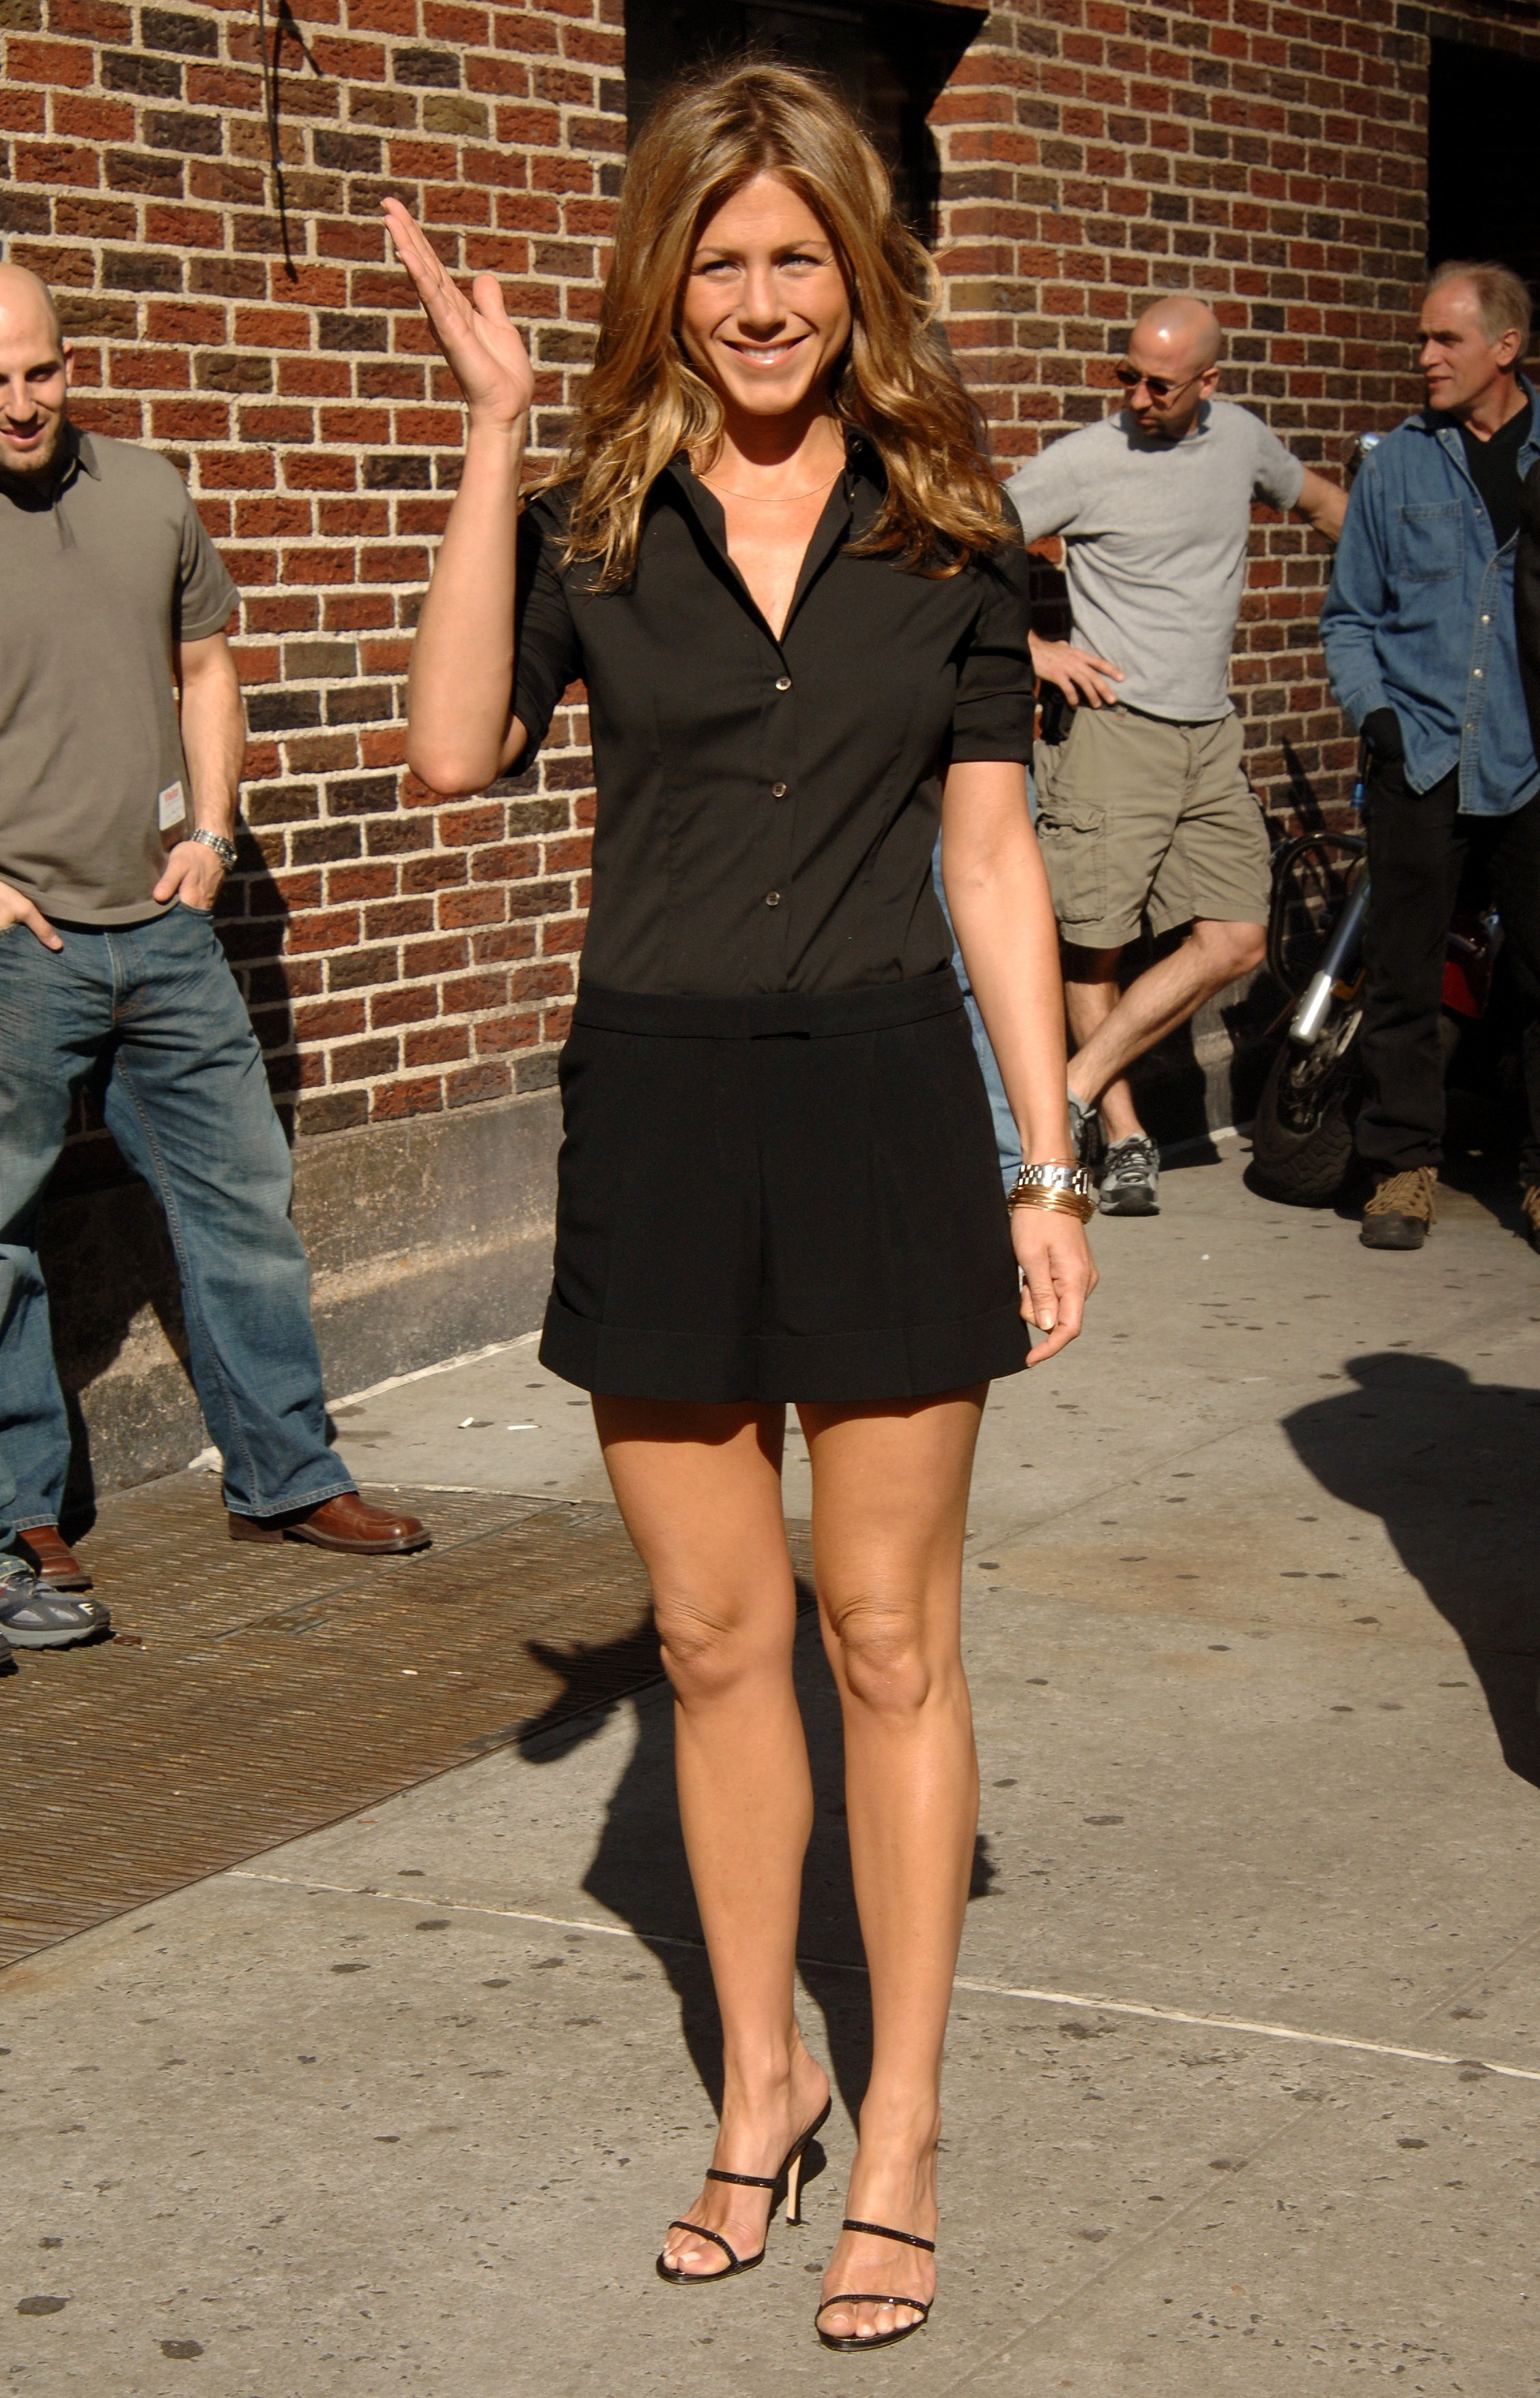 Jennifer waving to a crowd of fans and photographers outside